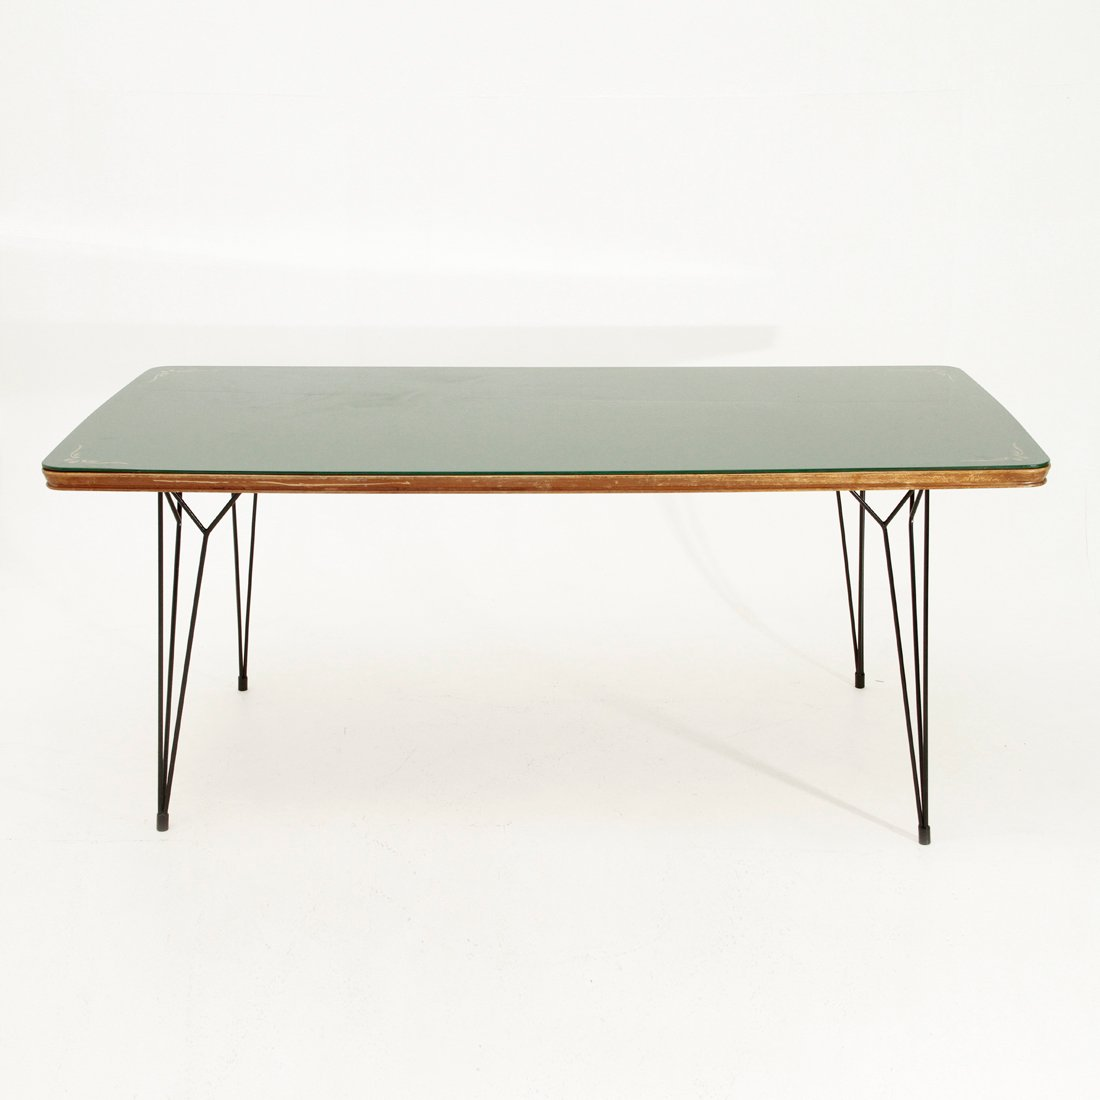 italian dining table with glass top and metal legs 1950s for sale at pamono. Black Bedroom Furniture Sets. Home Design Ideas